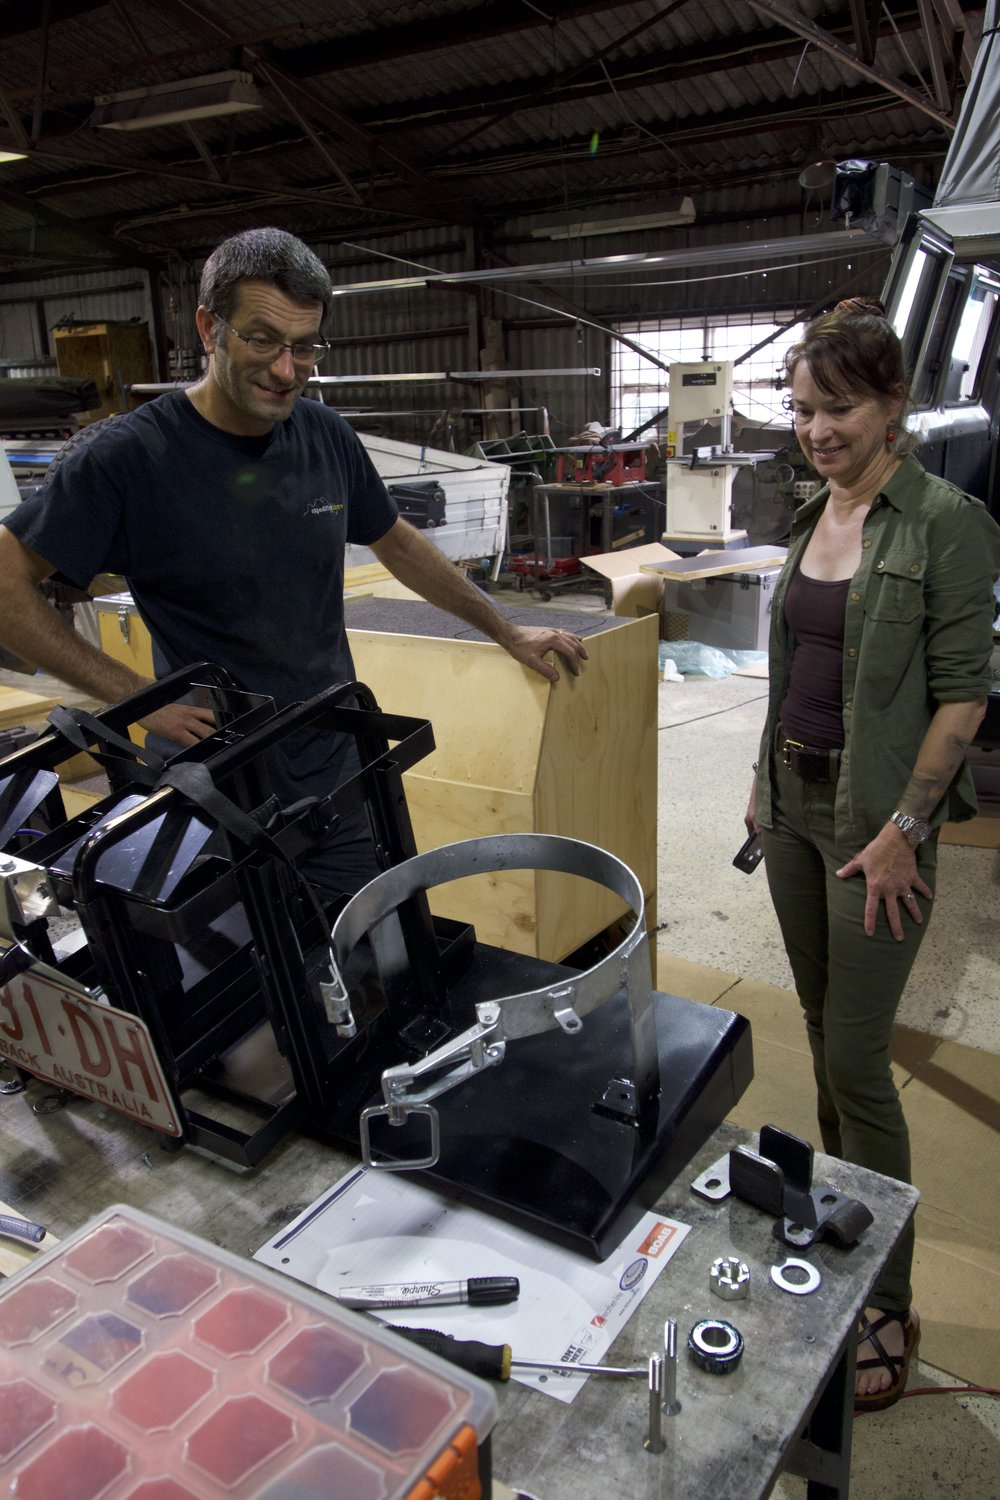 Daniel and Roseann inspect the jerry can/gas bottle holder for the Kaymar.